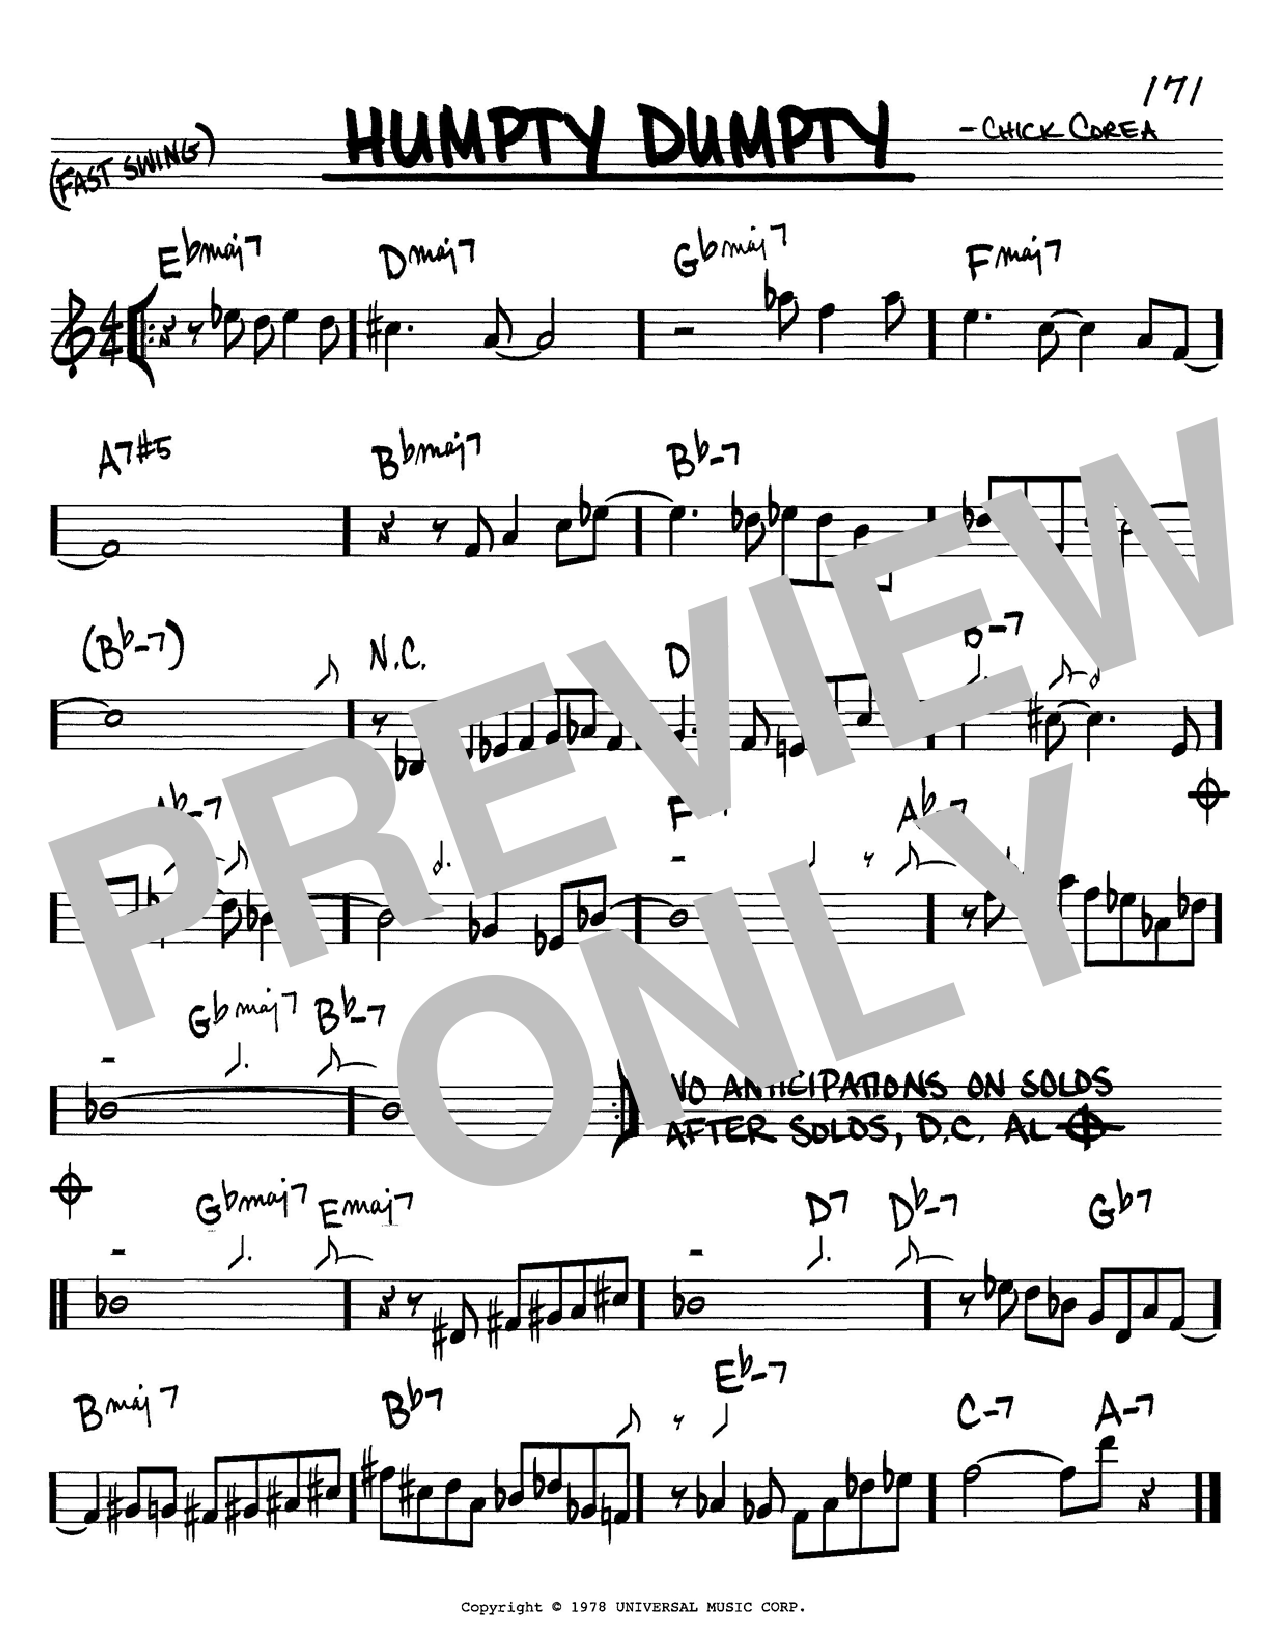 Chick Corea Humpty Dumpty sheet music notes and chords. Download Printable PDF.